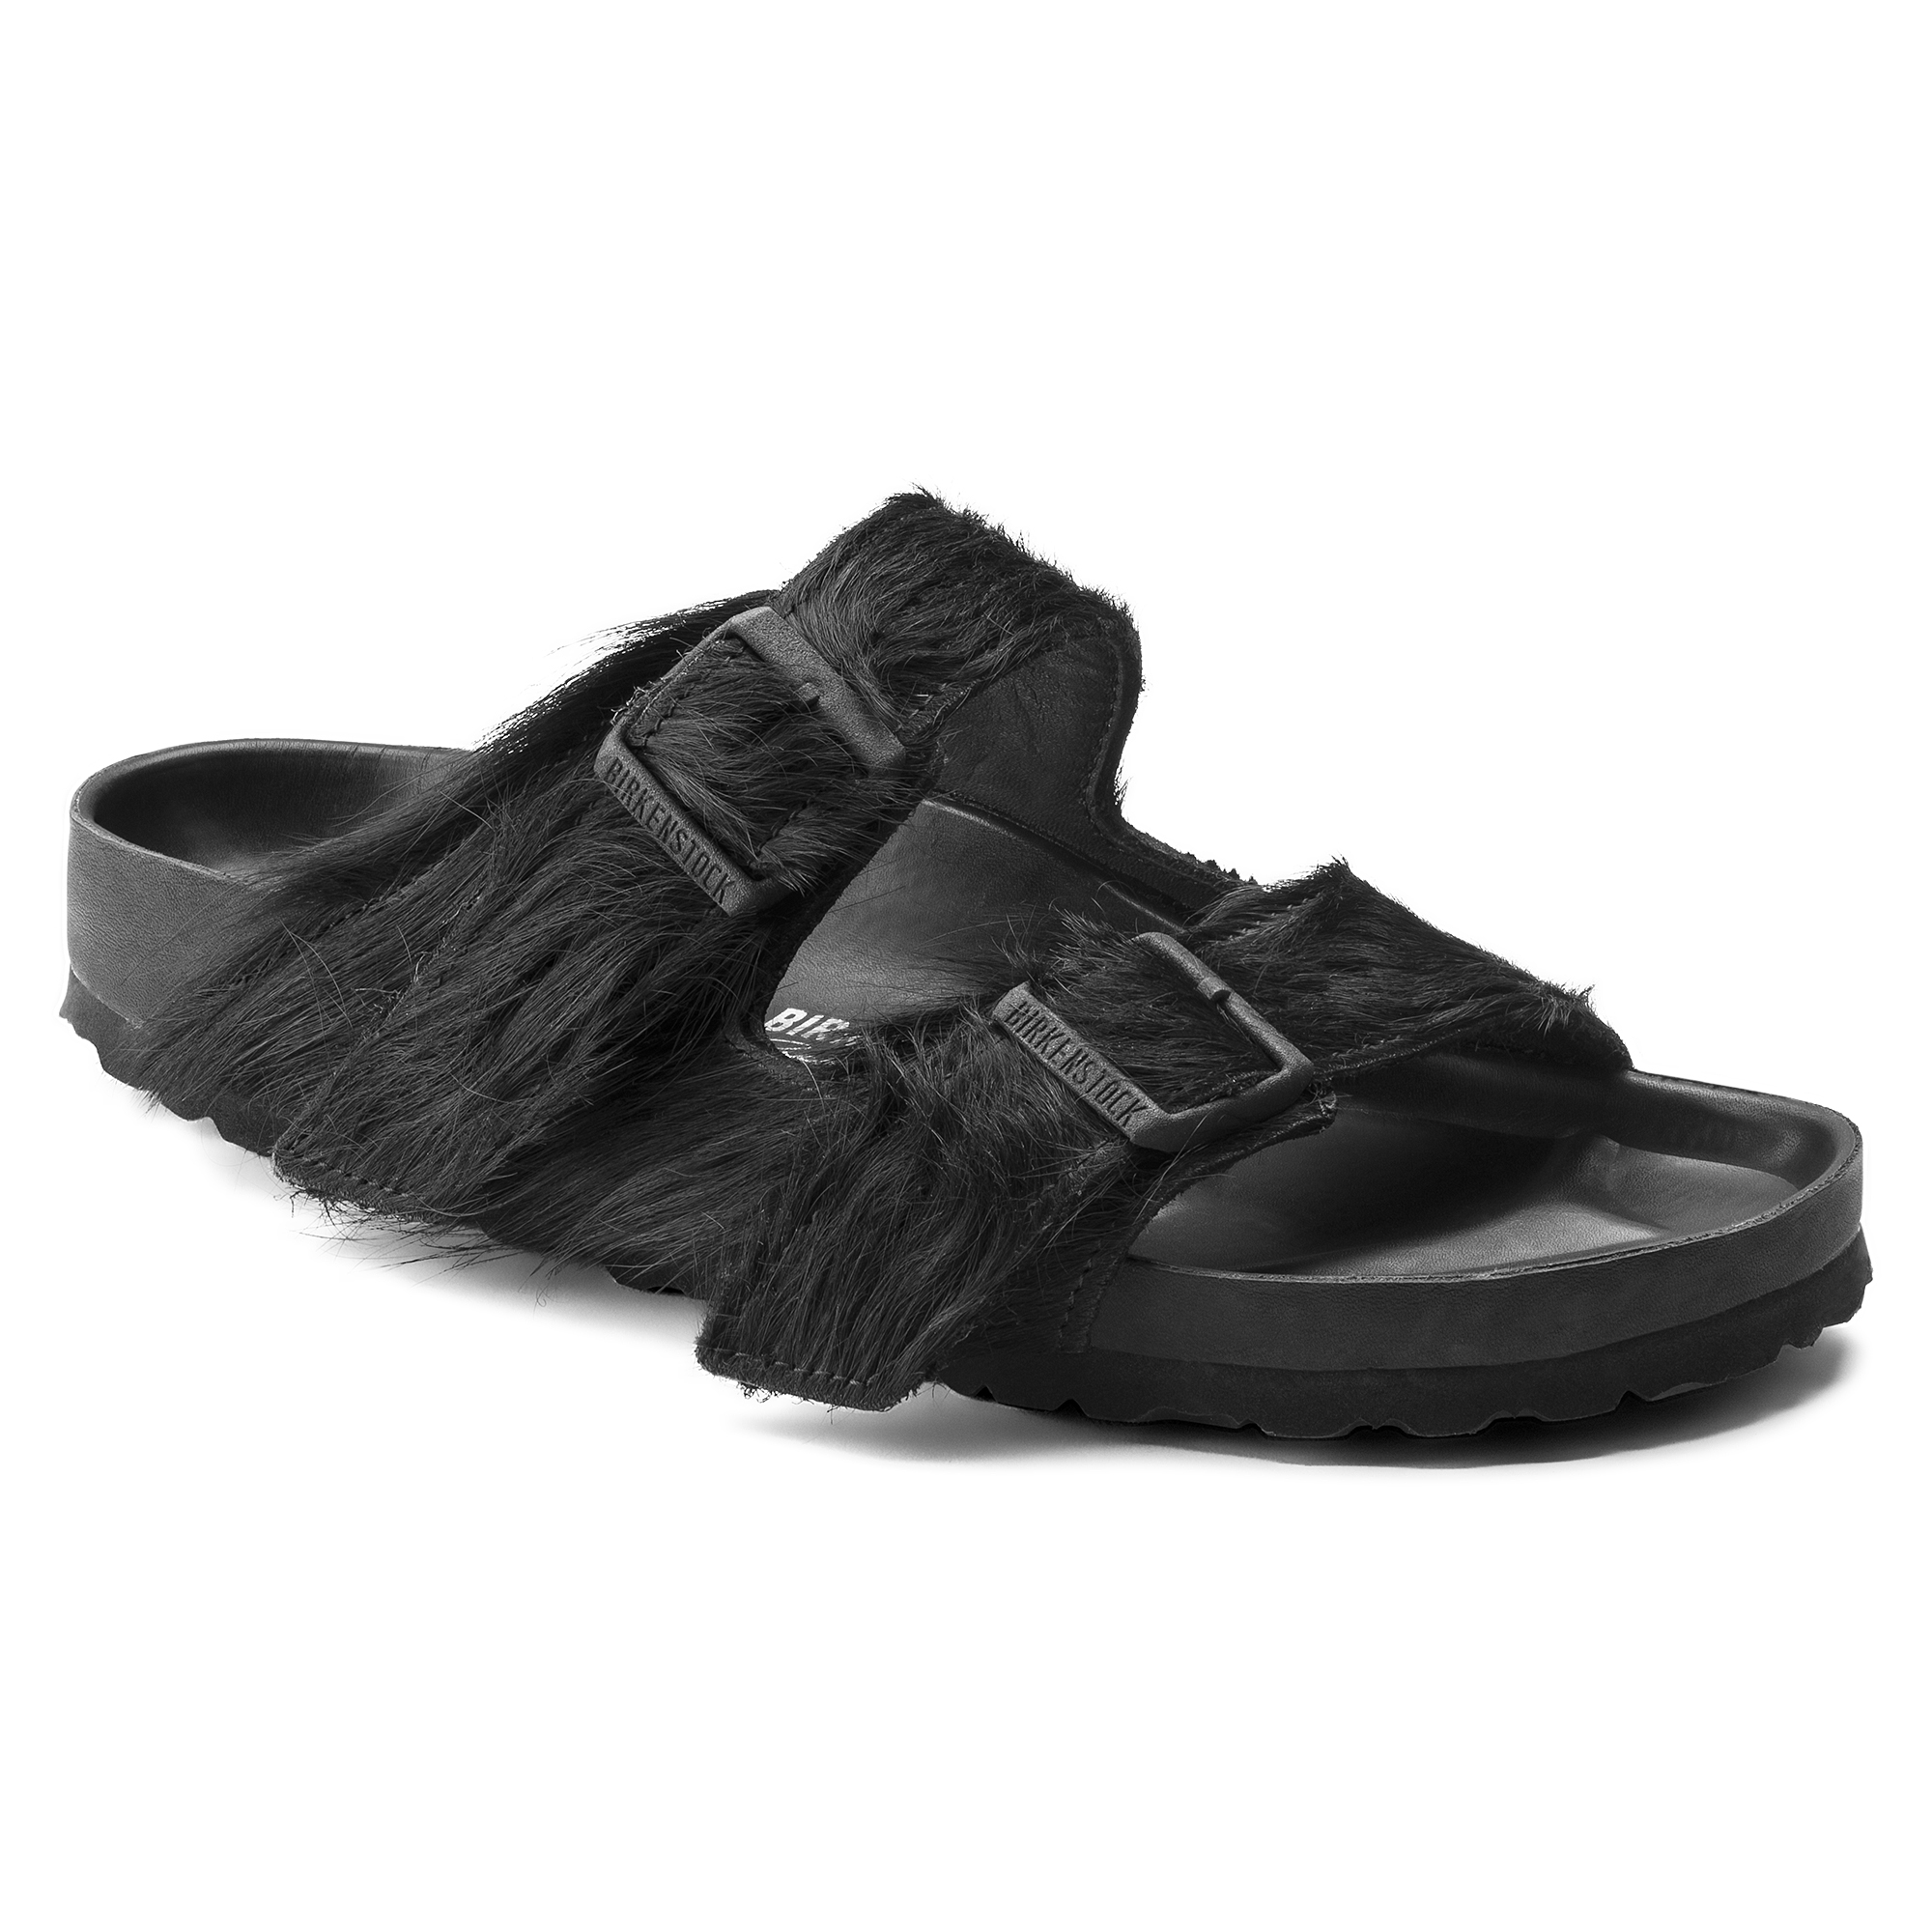 58f4feb2da0 Arizona Rick Owens Longhair Black ...